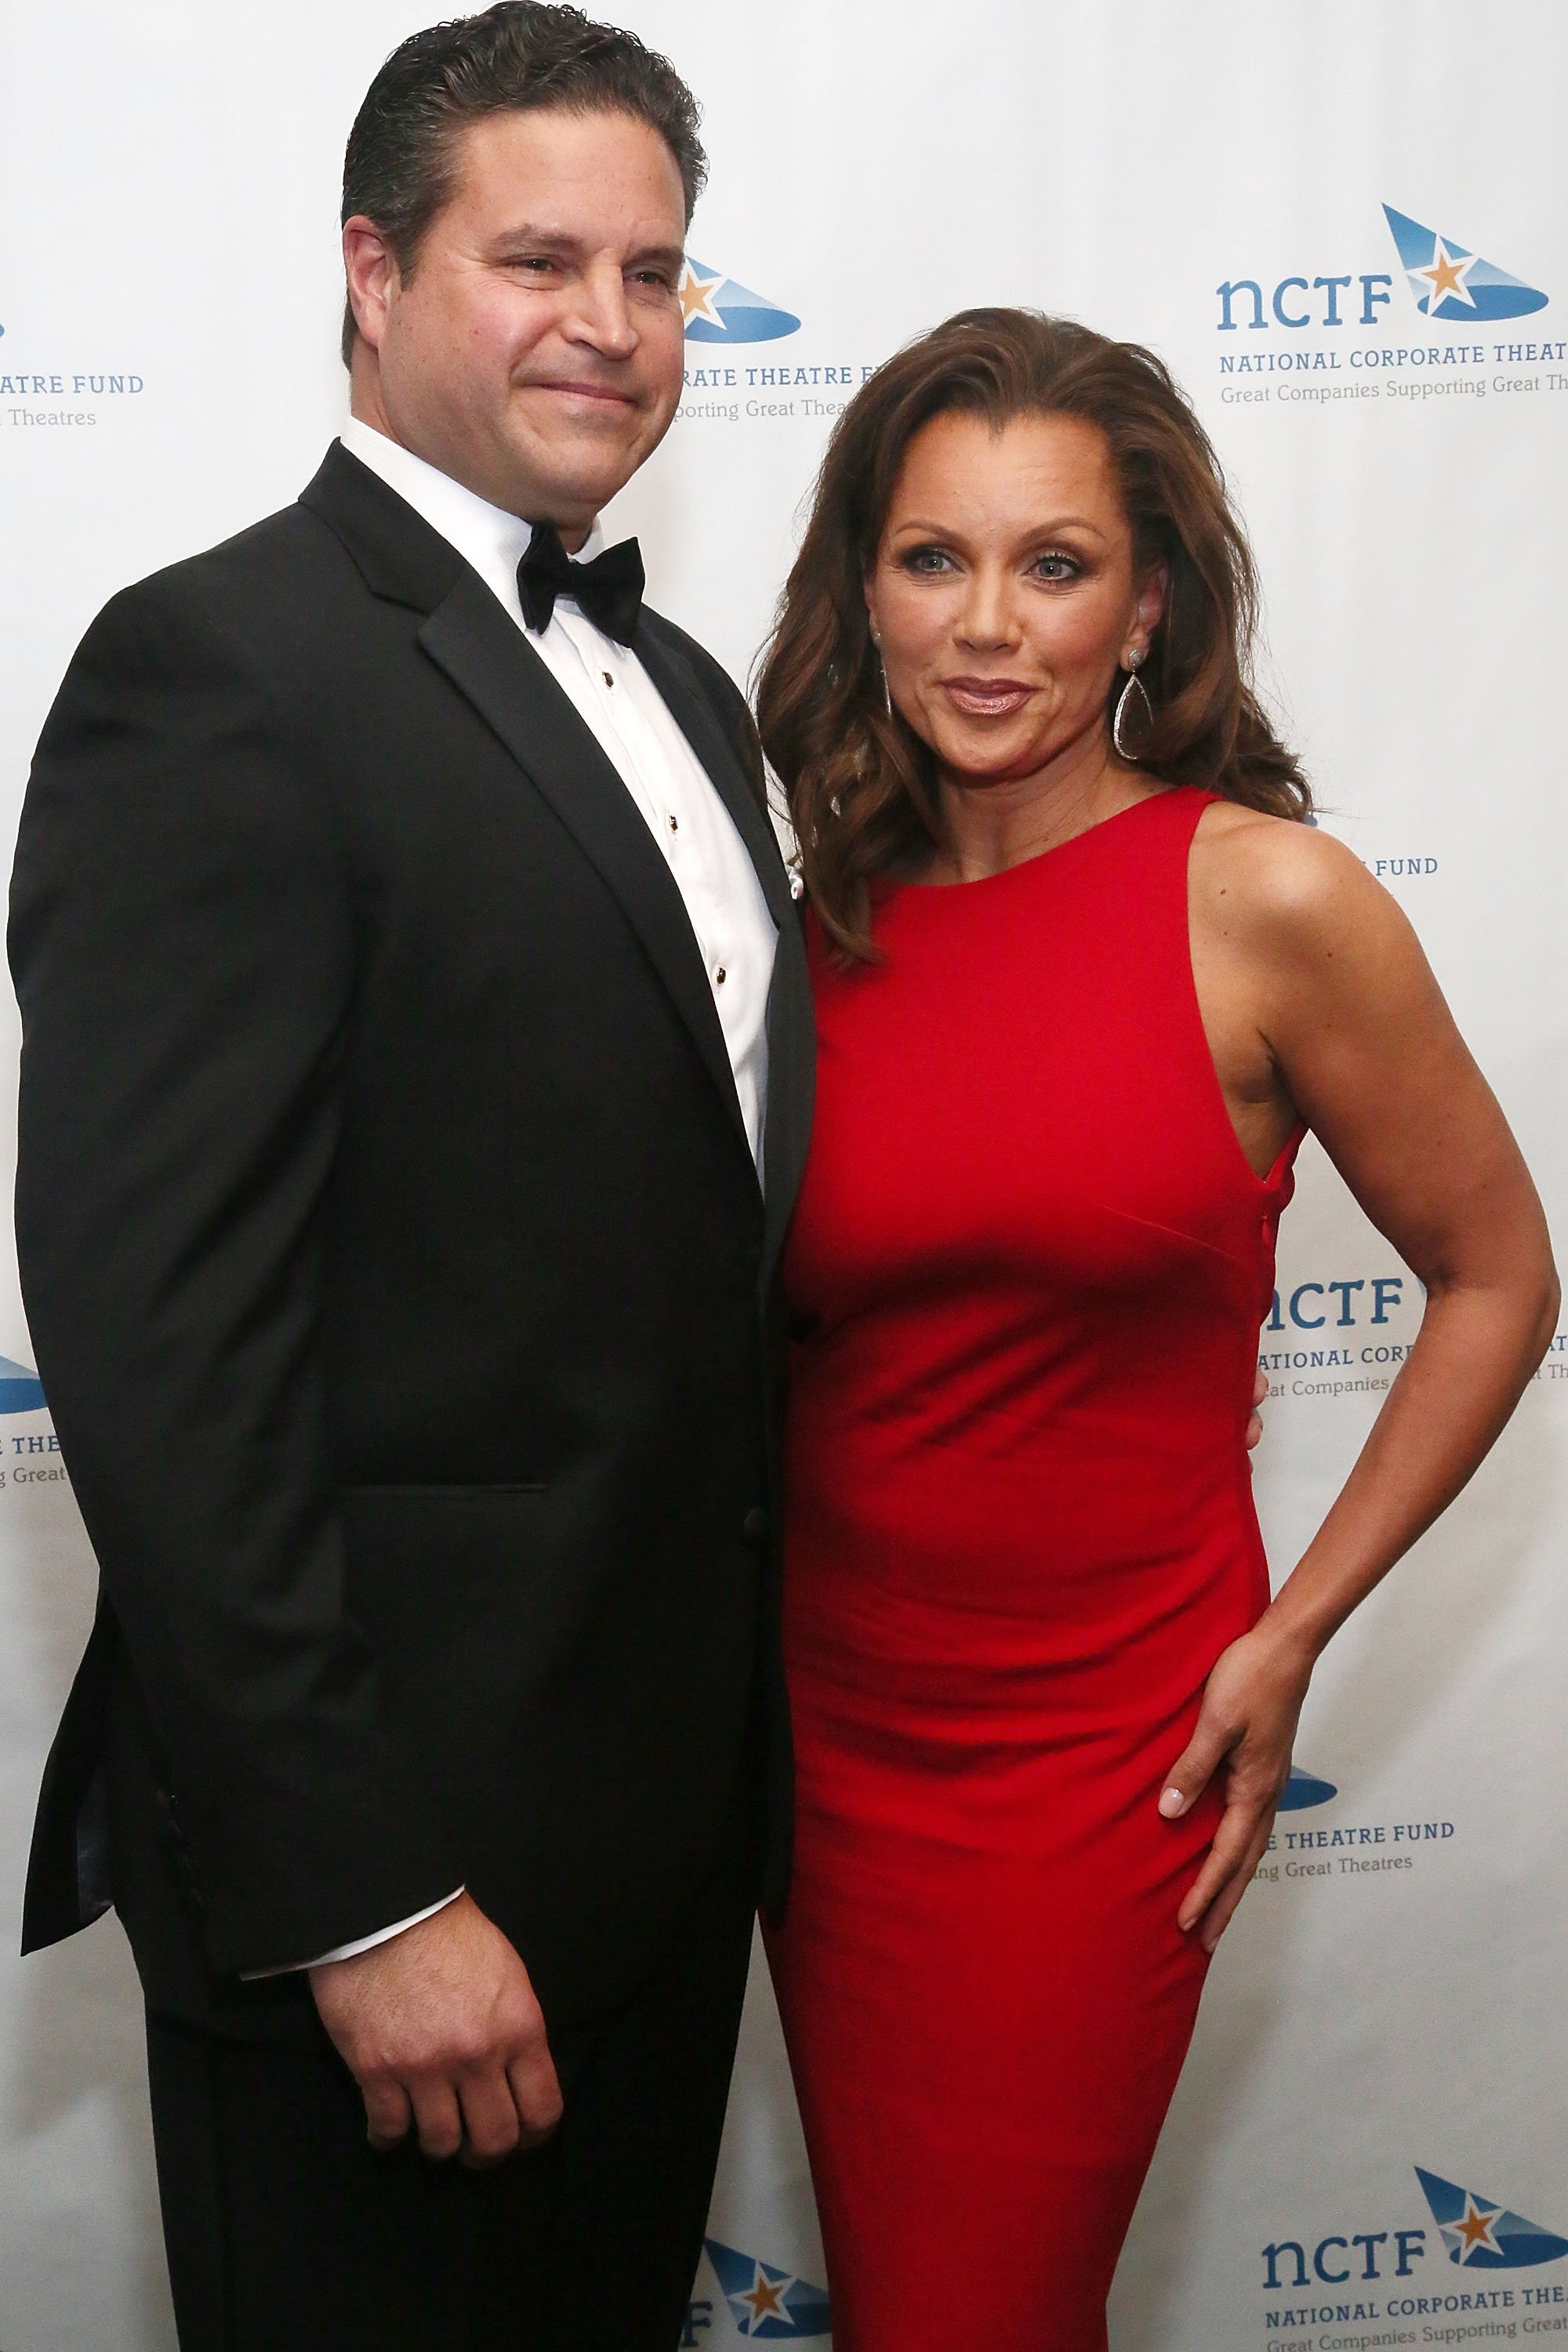 Jim Skrip and Vanessa Williams, at the National Corporate Theatre Fund 2013 Chairman's Award Gala at The Pierre Hotel on April 29, 2013 | Photo: GettyImages